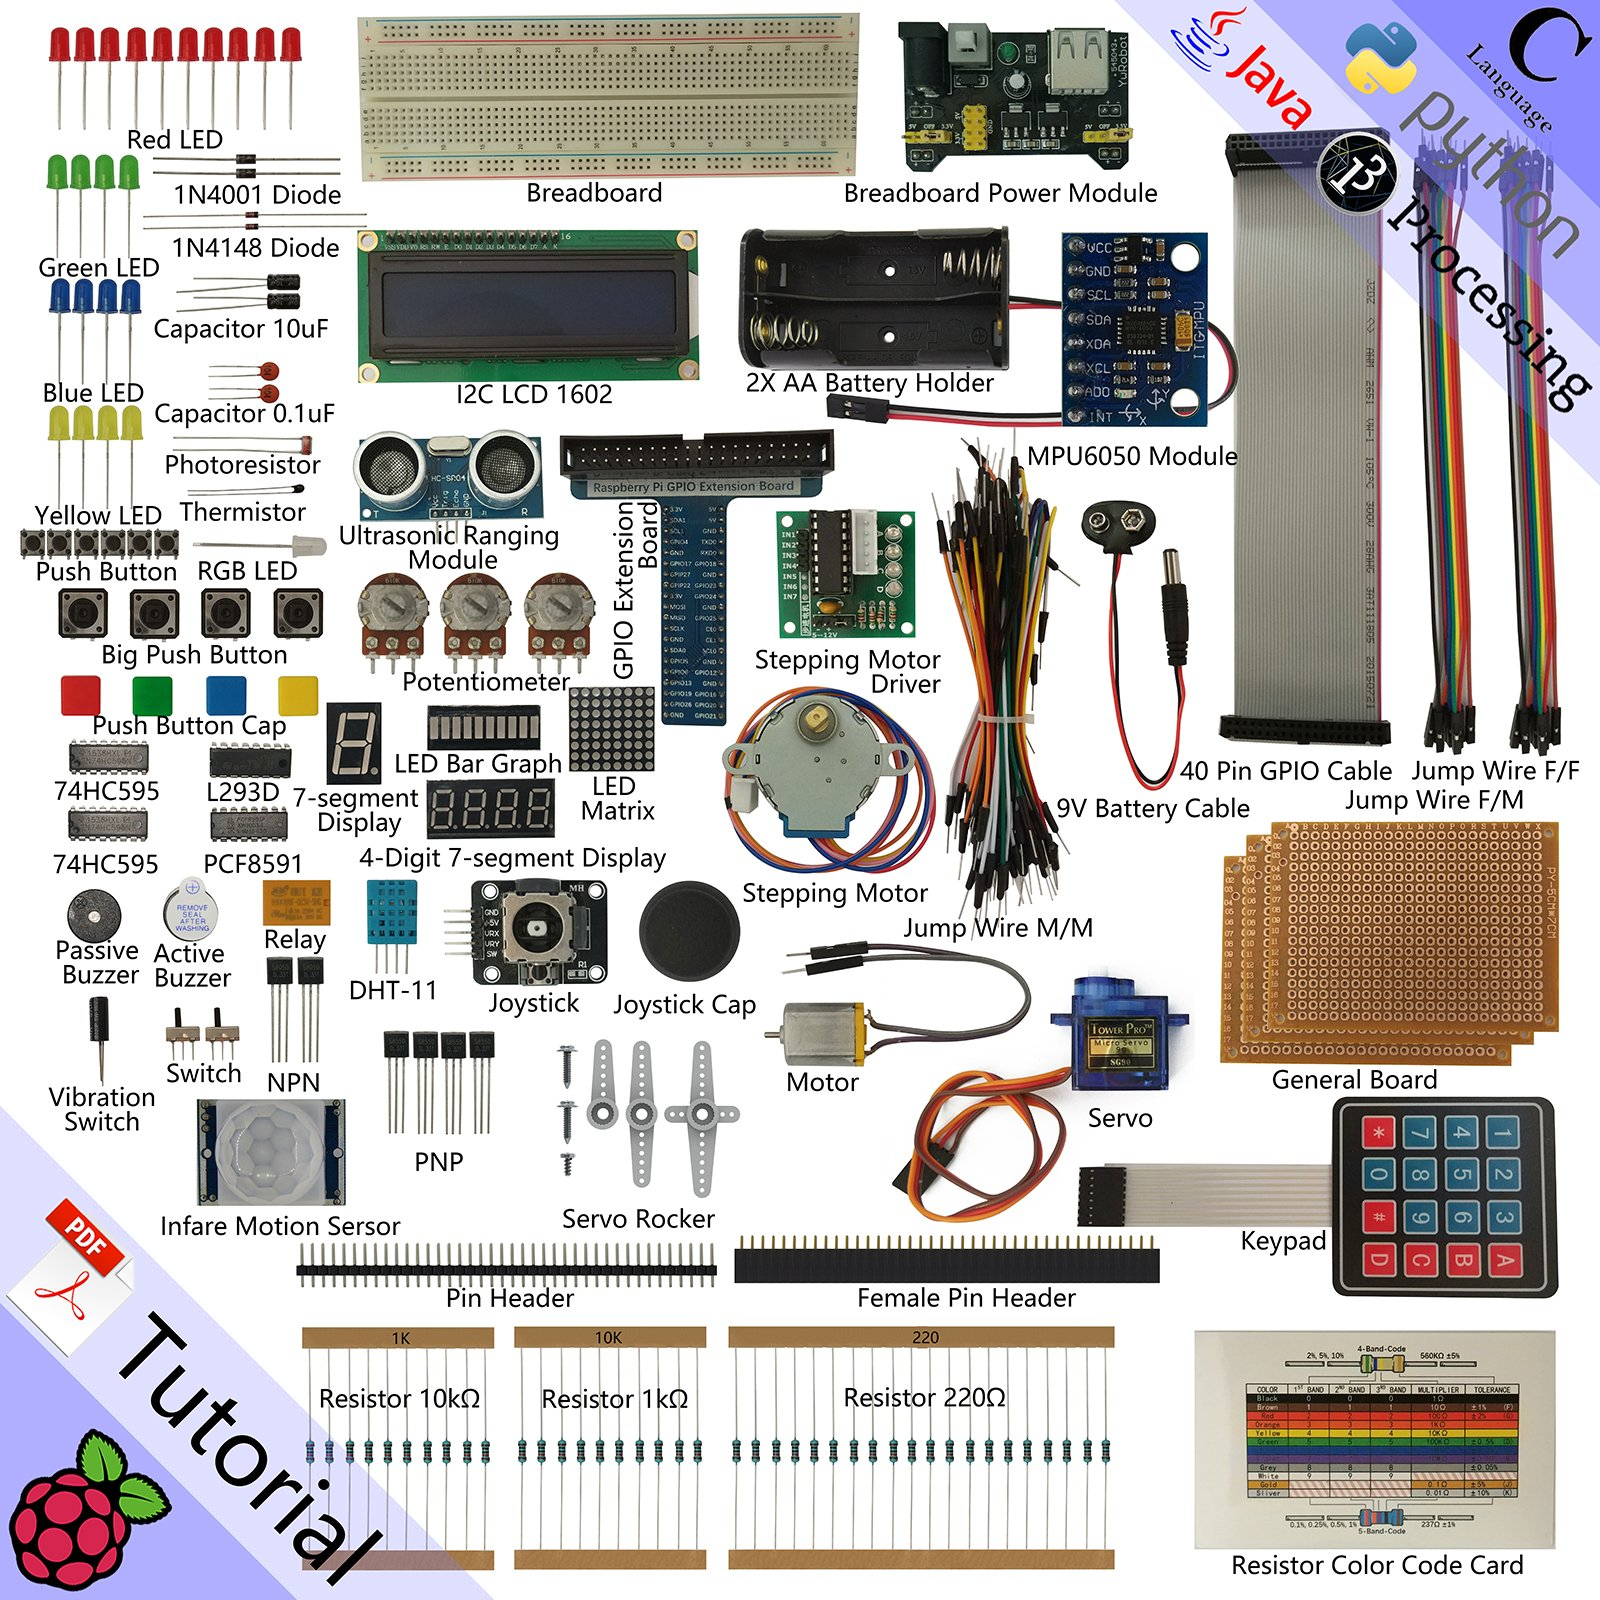 Freenove Ultimate Starter Kit for Raspberry Pi   Beginner Learning   Model 3B+ 3B 2B 1B+ 1A+ Zero W   Python, C, Java, Processing   57 Projects, 401 Pages Detailed Tutorials, 220+ Components